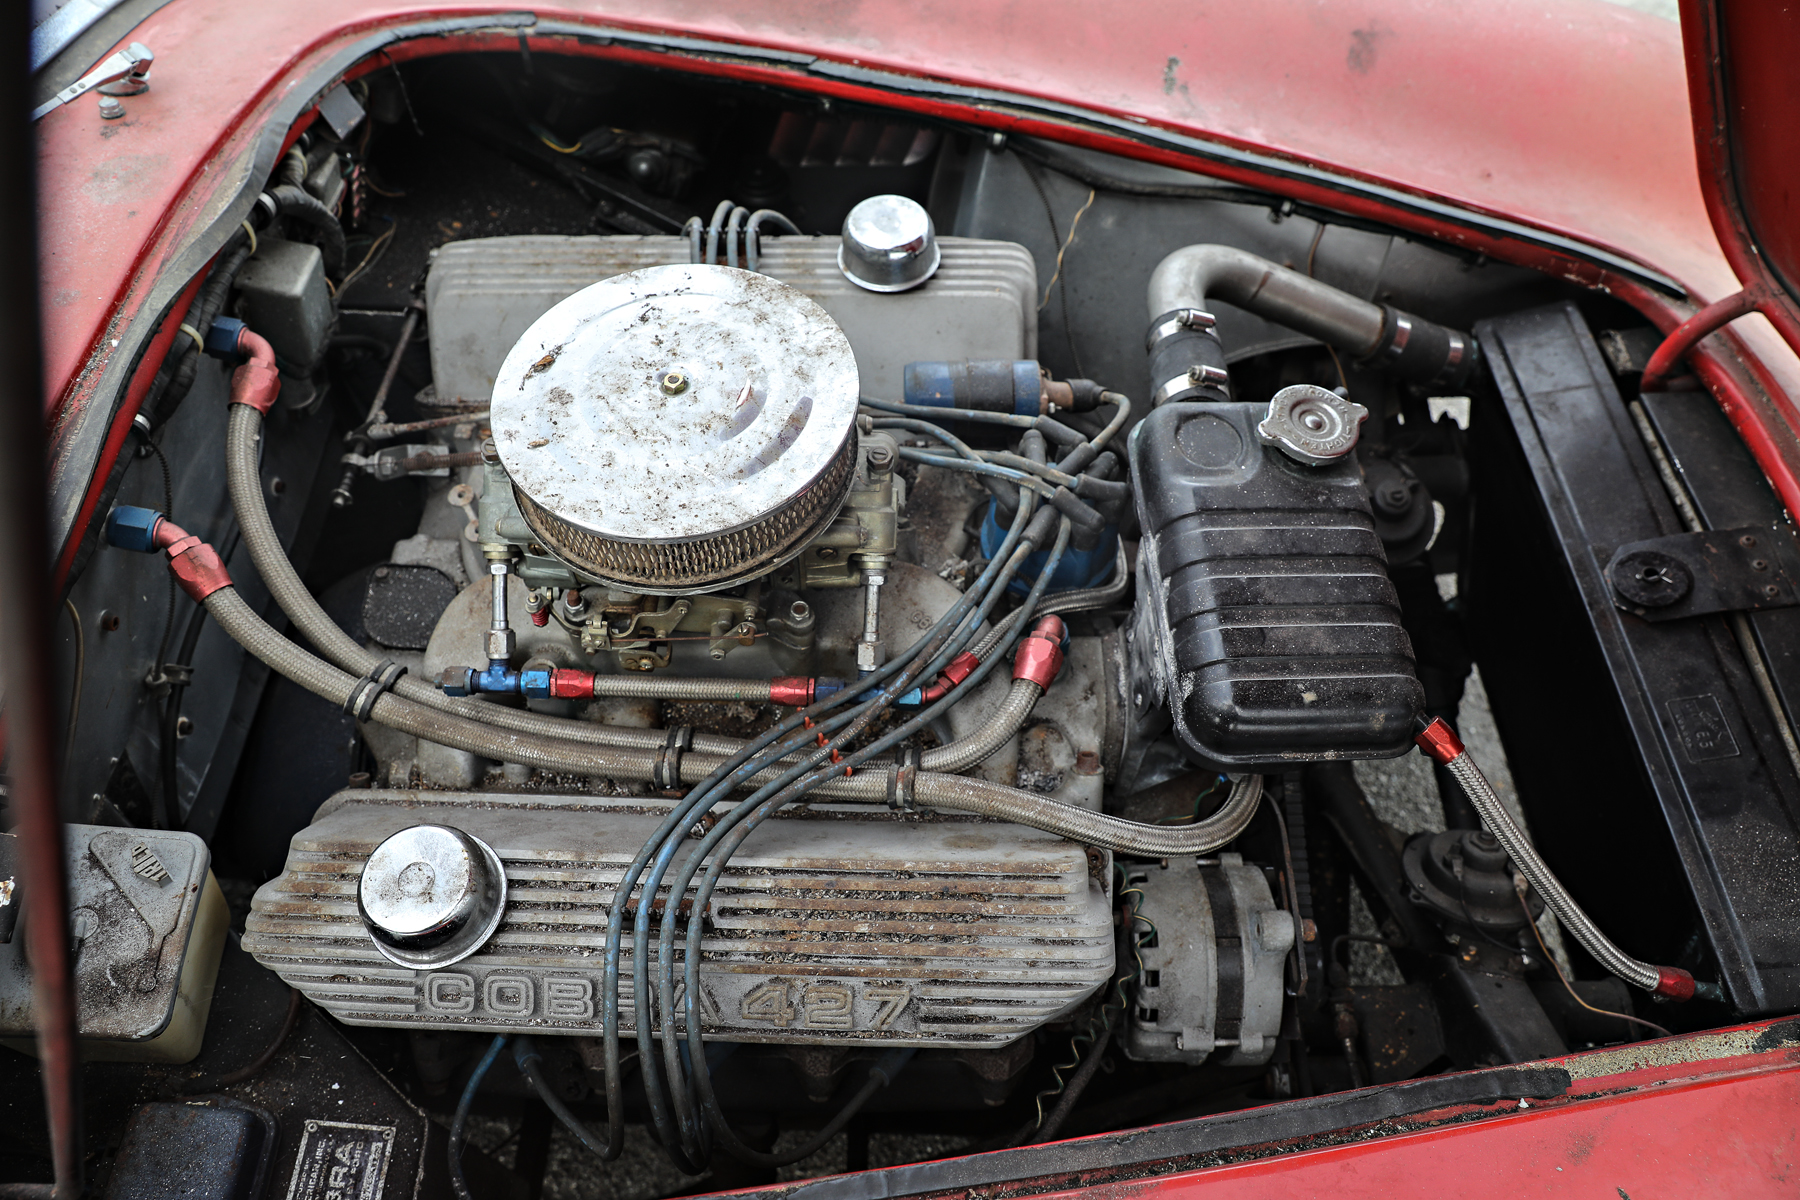 1966 Shelby Cobra 427 engine